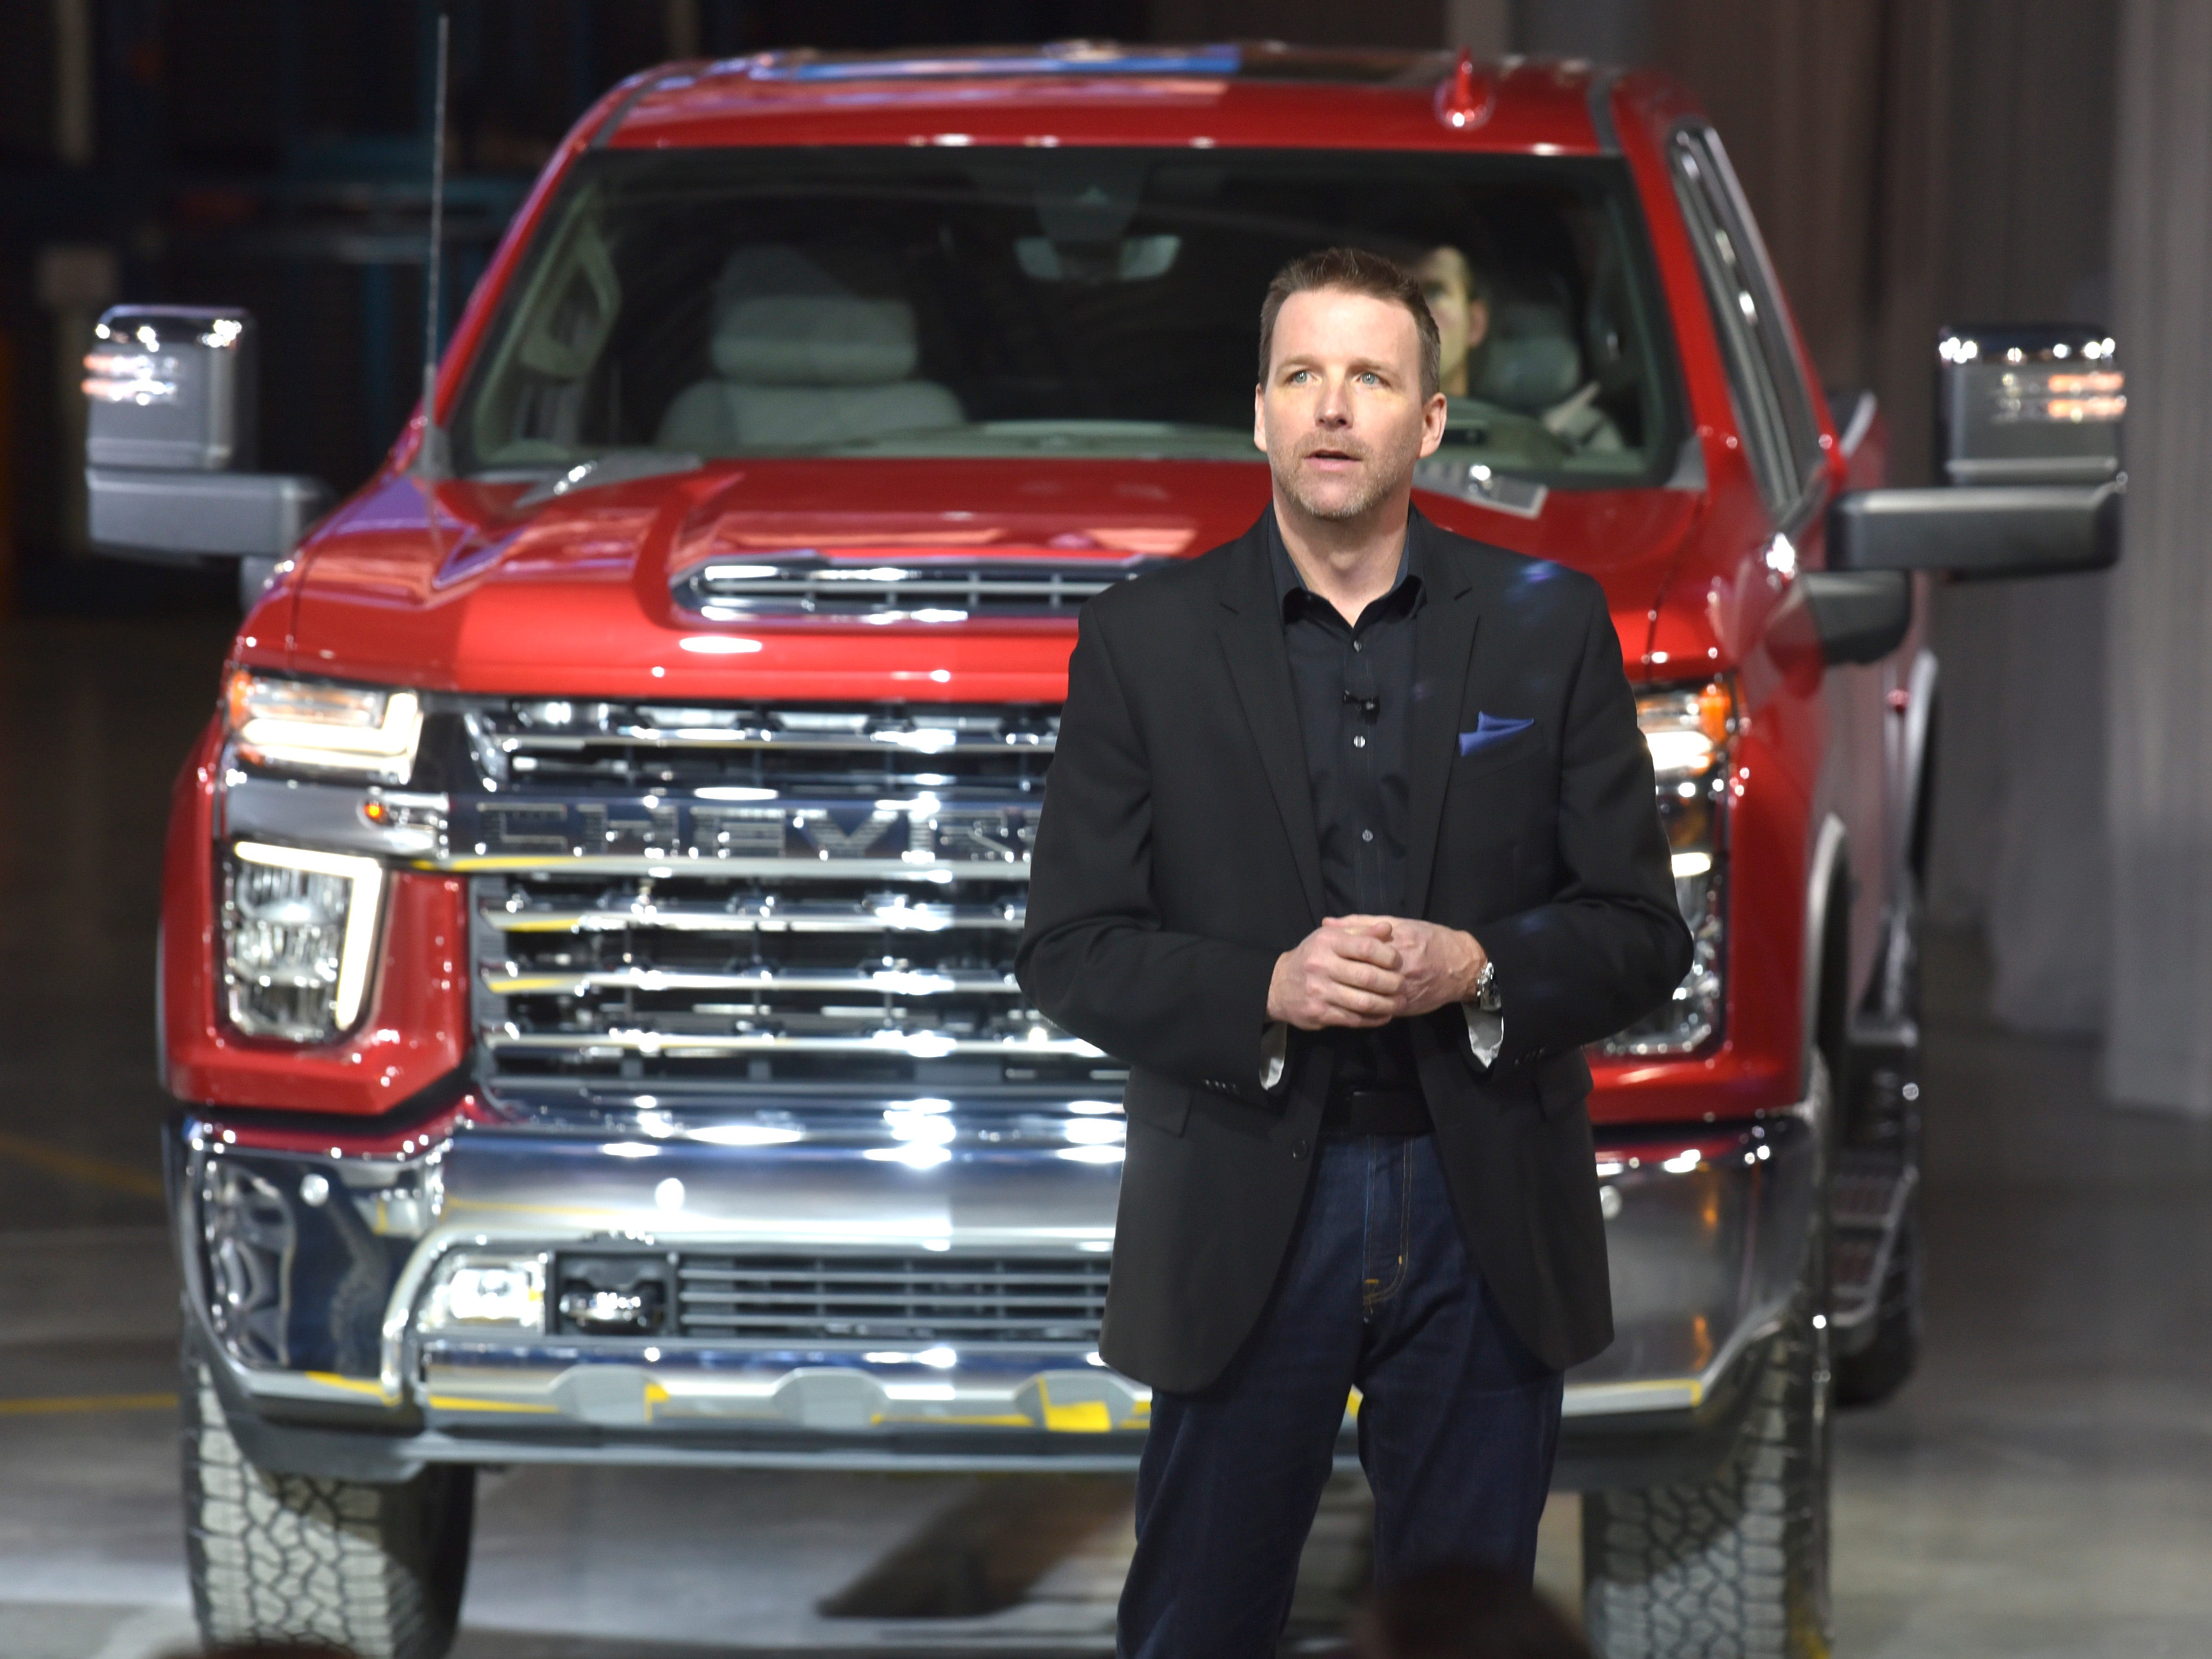 Rich Scheer, Director, Exterior Design, Chevy Trucks, talks in front of the Silverado HD.  Powered by an all-new gas-powered V-8 engine paired with the 10-speed Allison transmission that debuted on the new heavy-duty GMC Sierra last month, the new Heavy Duty breaks away from the Camaro-inspired grille design on the 1500 with a bolder fascia and bigger headlights.